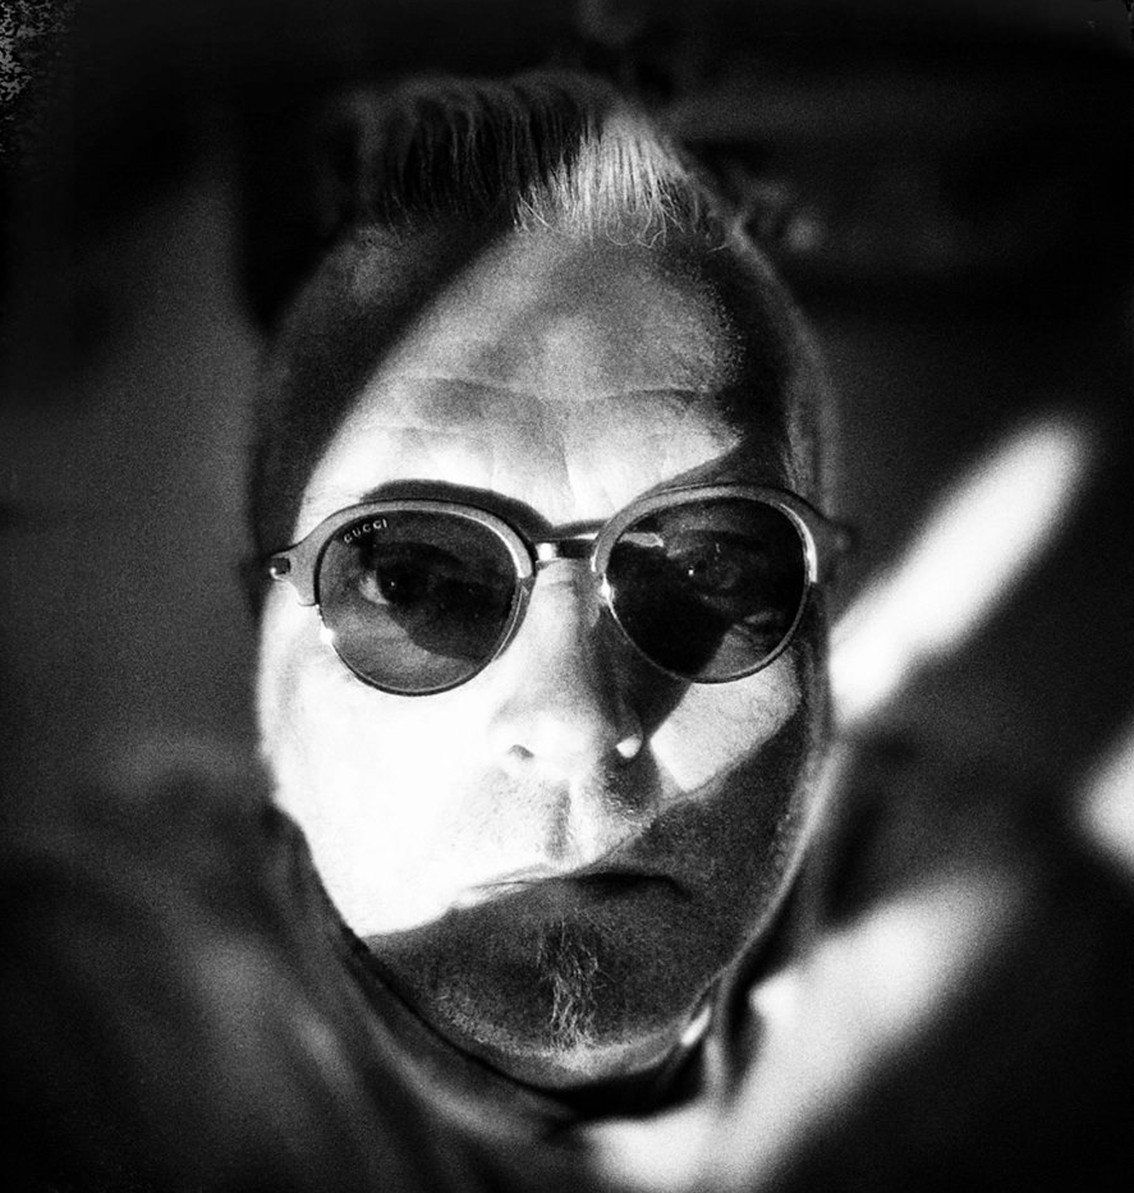 John Fryer launches 6 free songs for Black Needle Noise project feat. Jarboe, Antic Clay, Andreas Elvenes, Ledfoot & Zia